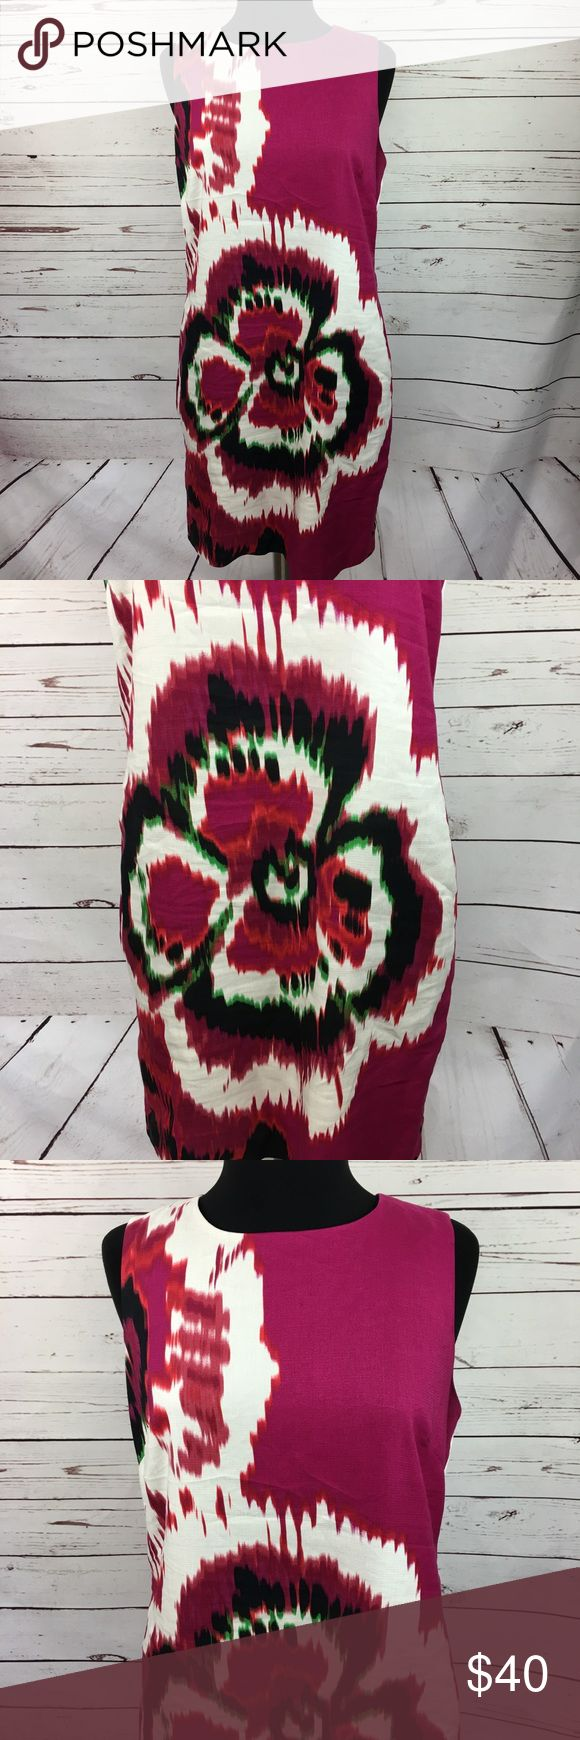 """Taylor Tie Dyed Floral Pink Sleeveless Shift Dress Taylor women's pink floral tie dye sleeveless shift dress. Size 12. 55% silk 45% linen. Fully lined. Zipper in back.  Underarm to Underarm: 20""""  Top shoulder to bottom: 37""""  1D817429 Taylor Dresses Dresses"""